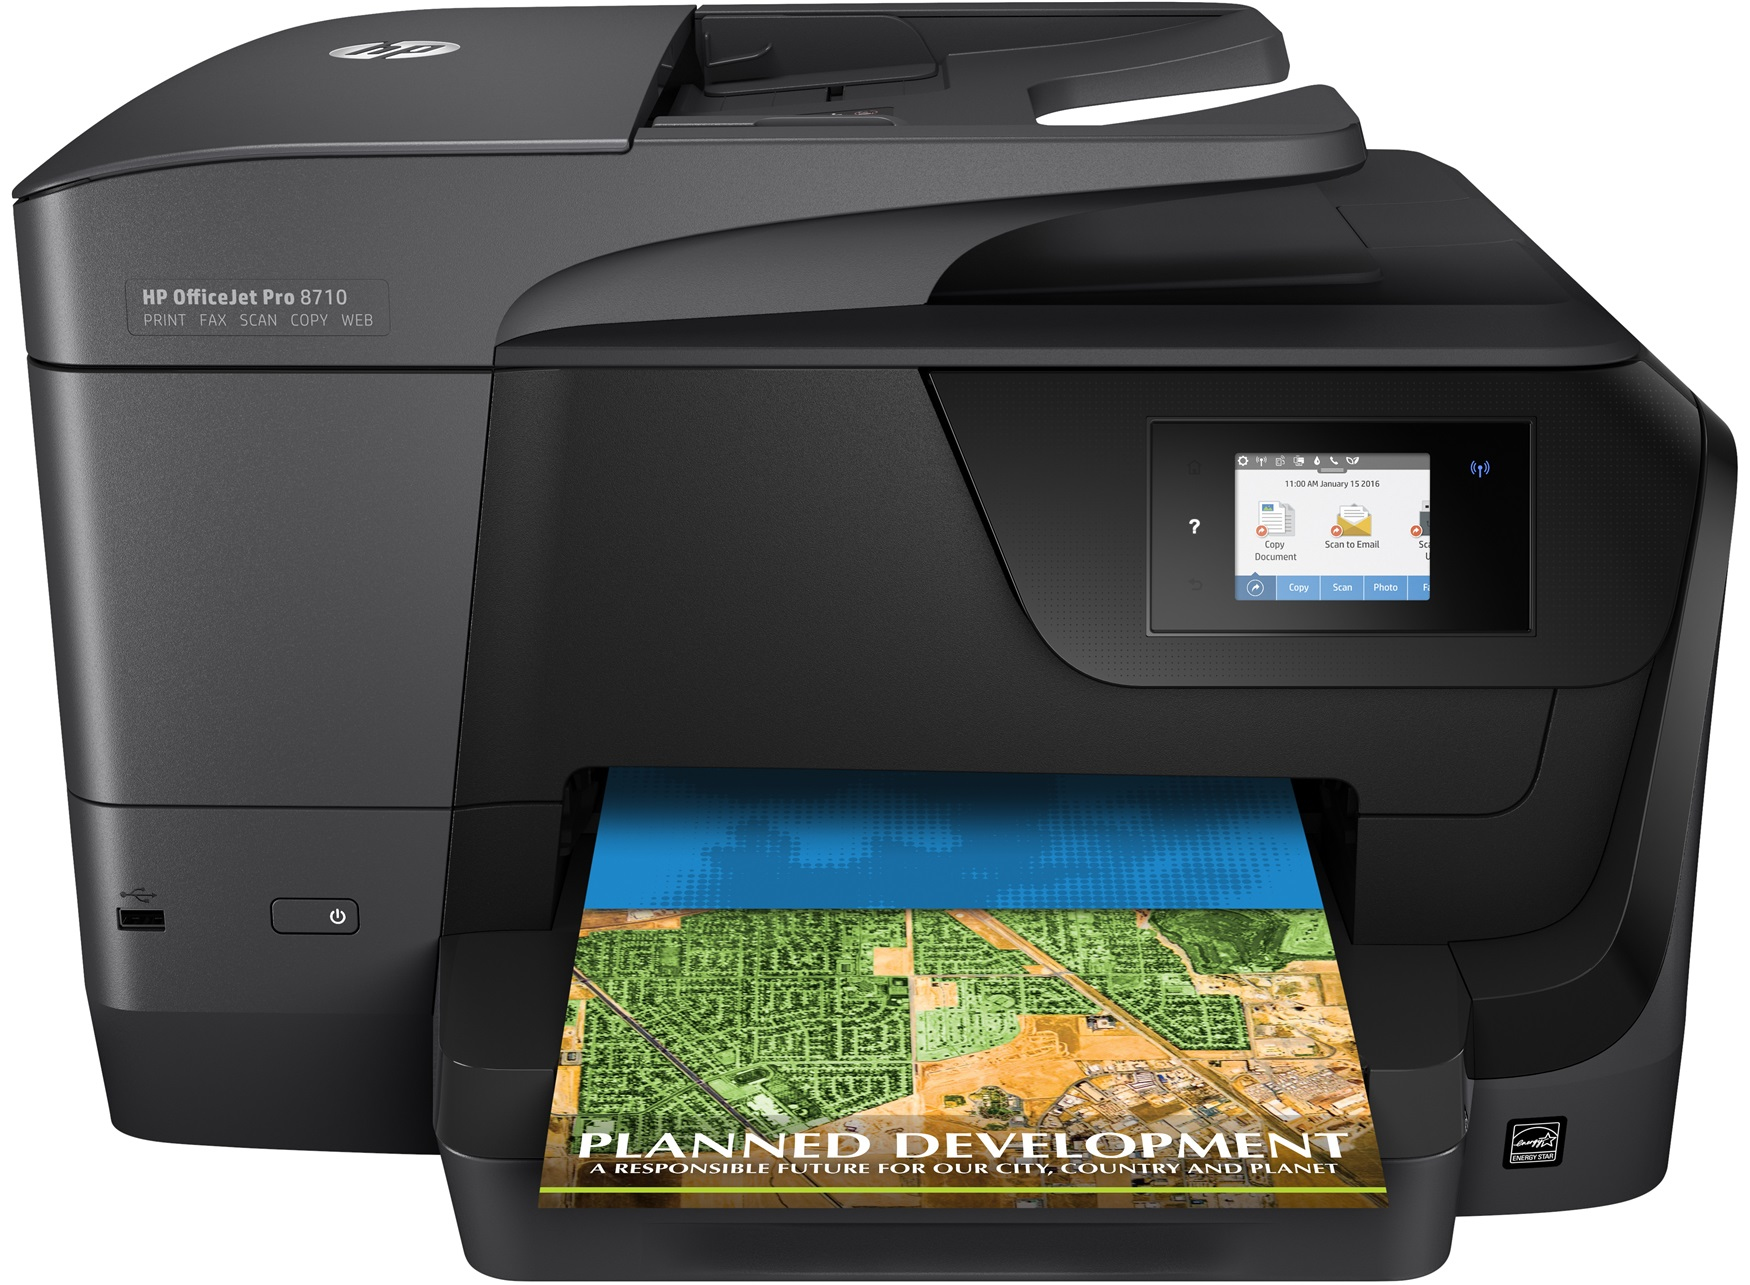 HP OfficeJet Pro 8710 AiO 4800 x 1200DPI Thermal Inkjet A4 22ppm Wi-Fi